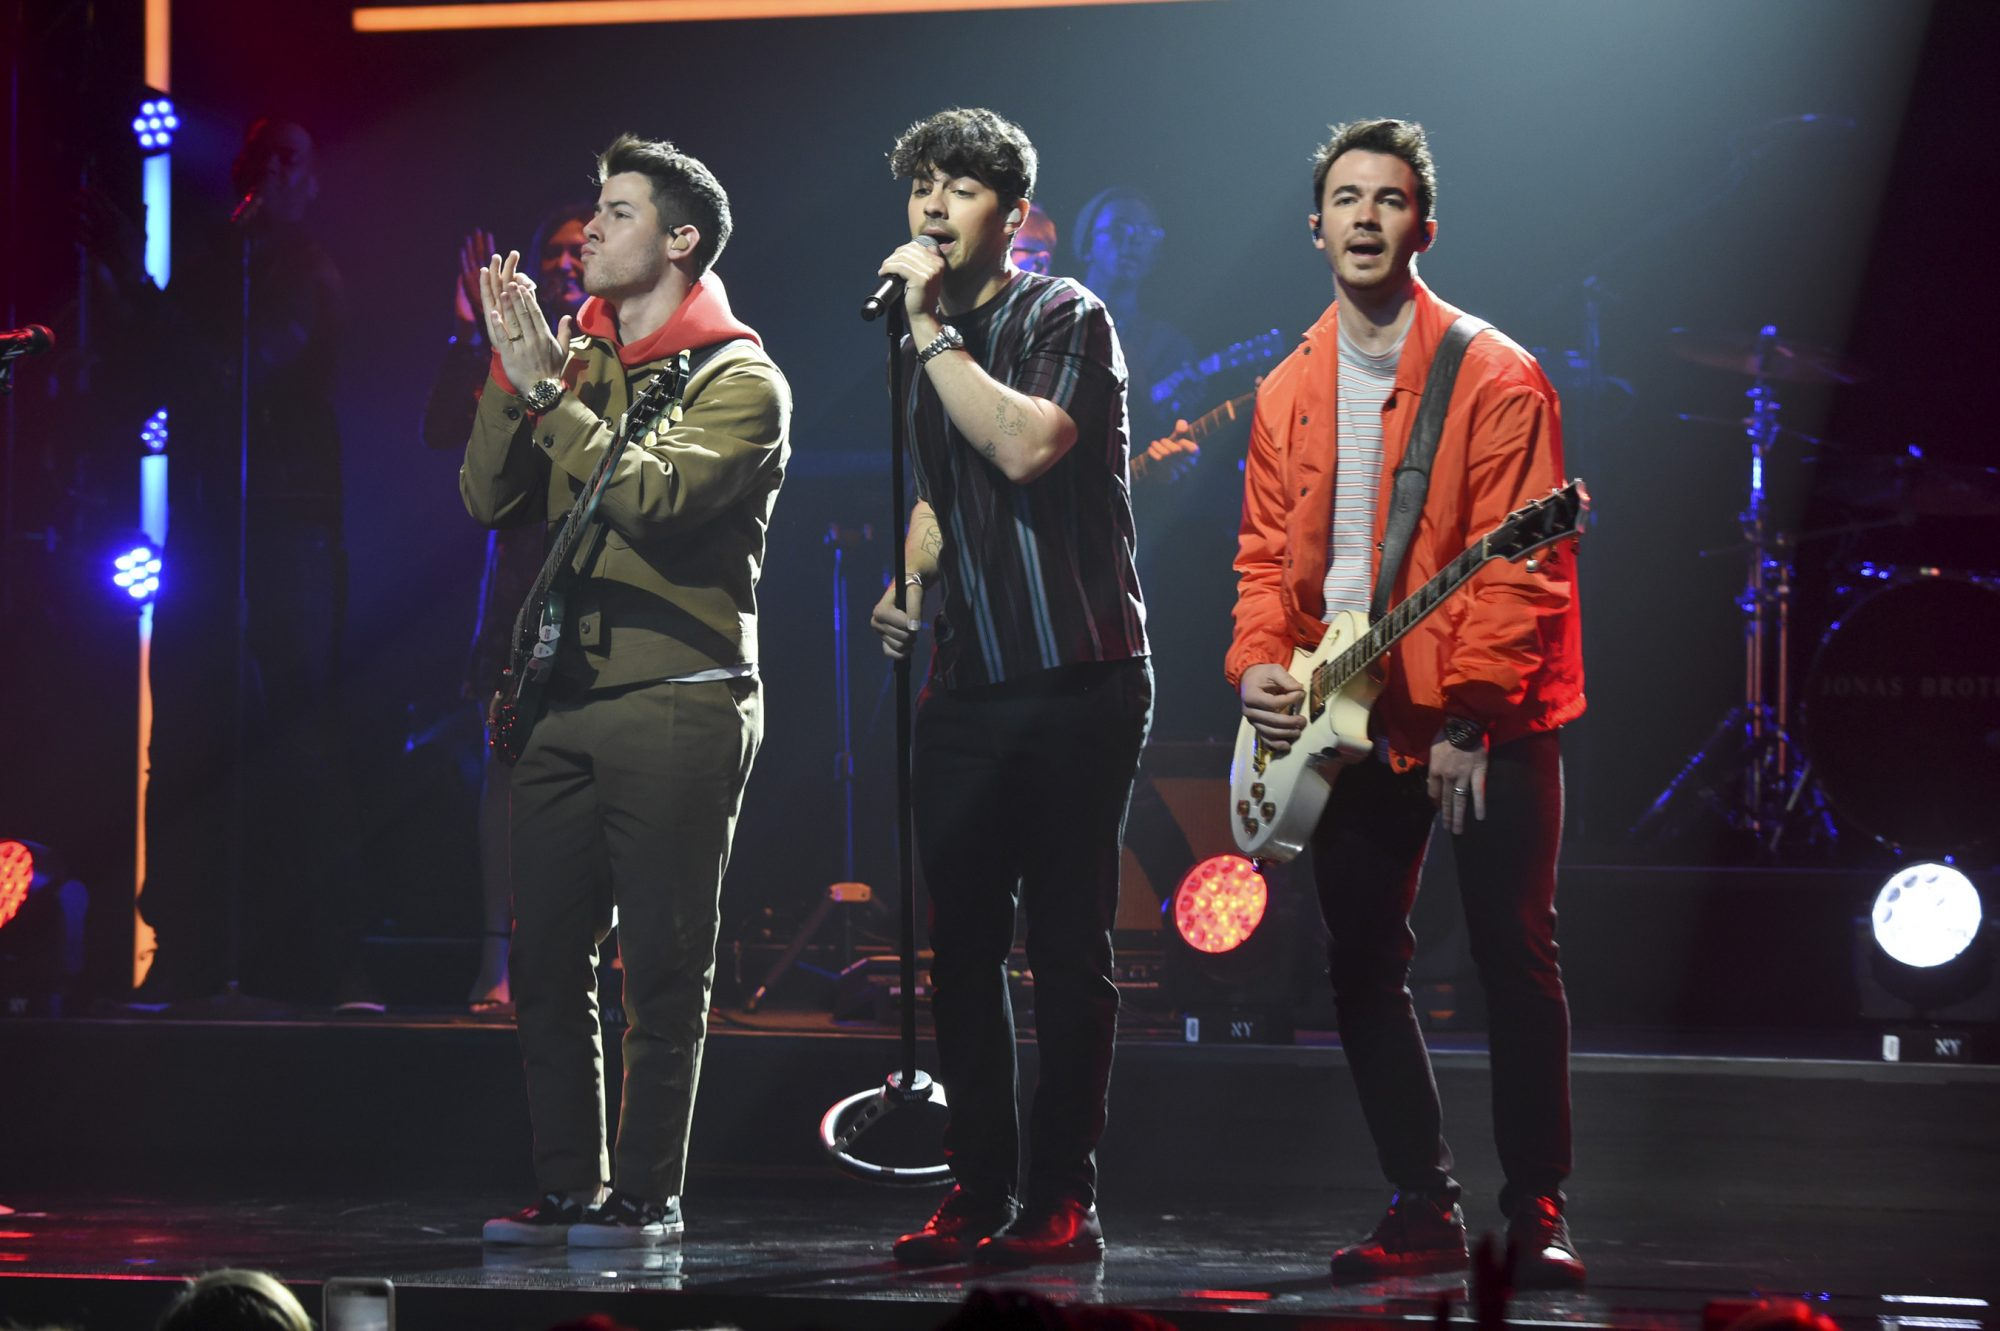 NEW YORK, NEW YORK - MAY 16: (L-R) Nick Jonas, Joe Jonas, and Kevin Jonas of The Jonas Brothers speak onstage during the The CW Network 2019 Upfronts at New York City Center on May 16, 2019 in New York City. (Photo by Kevin Mazur/Getty Images for The CW Network)